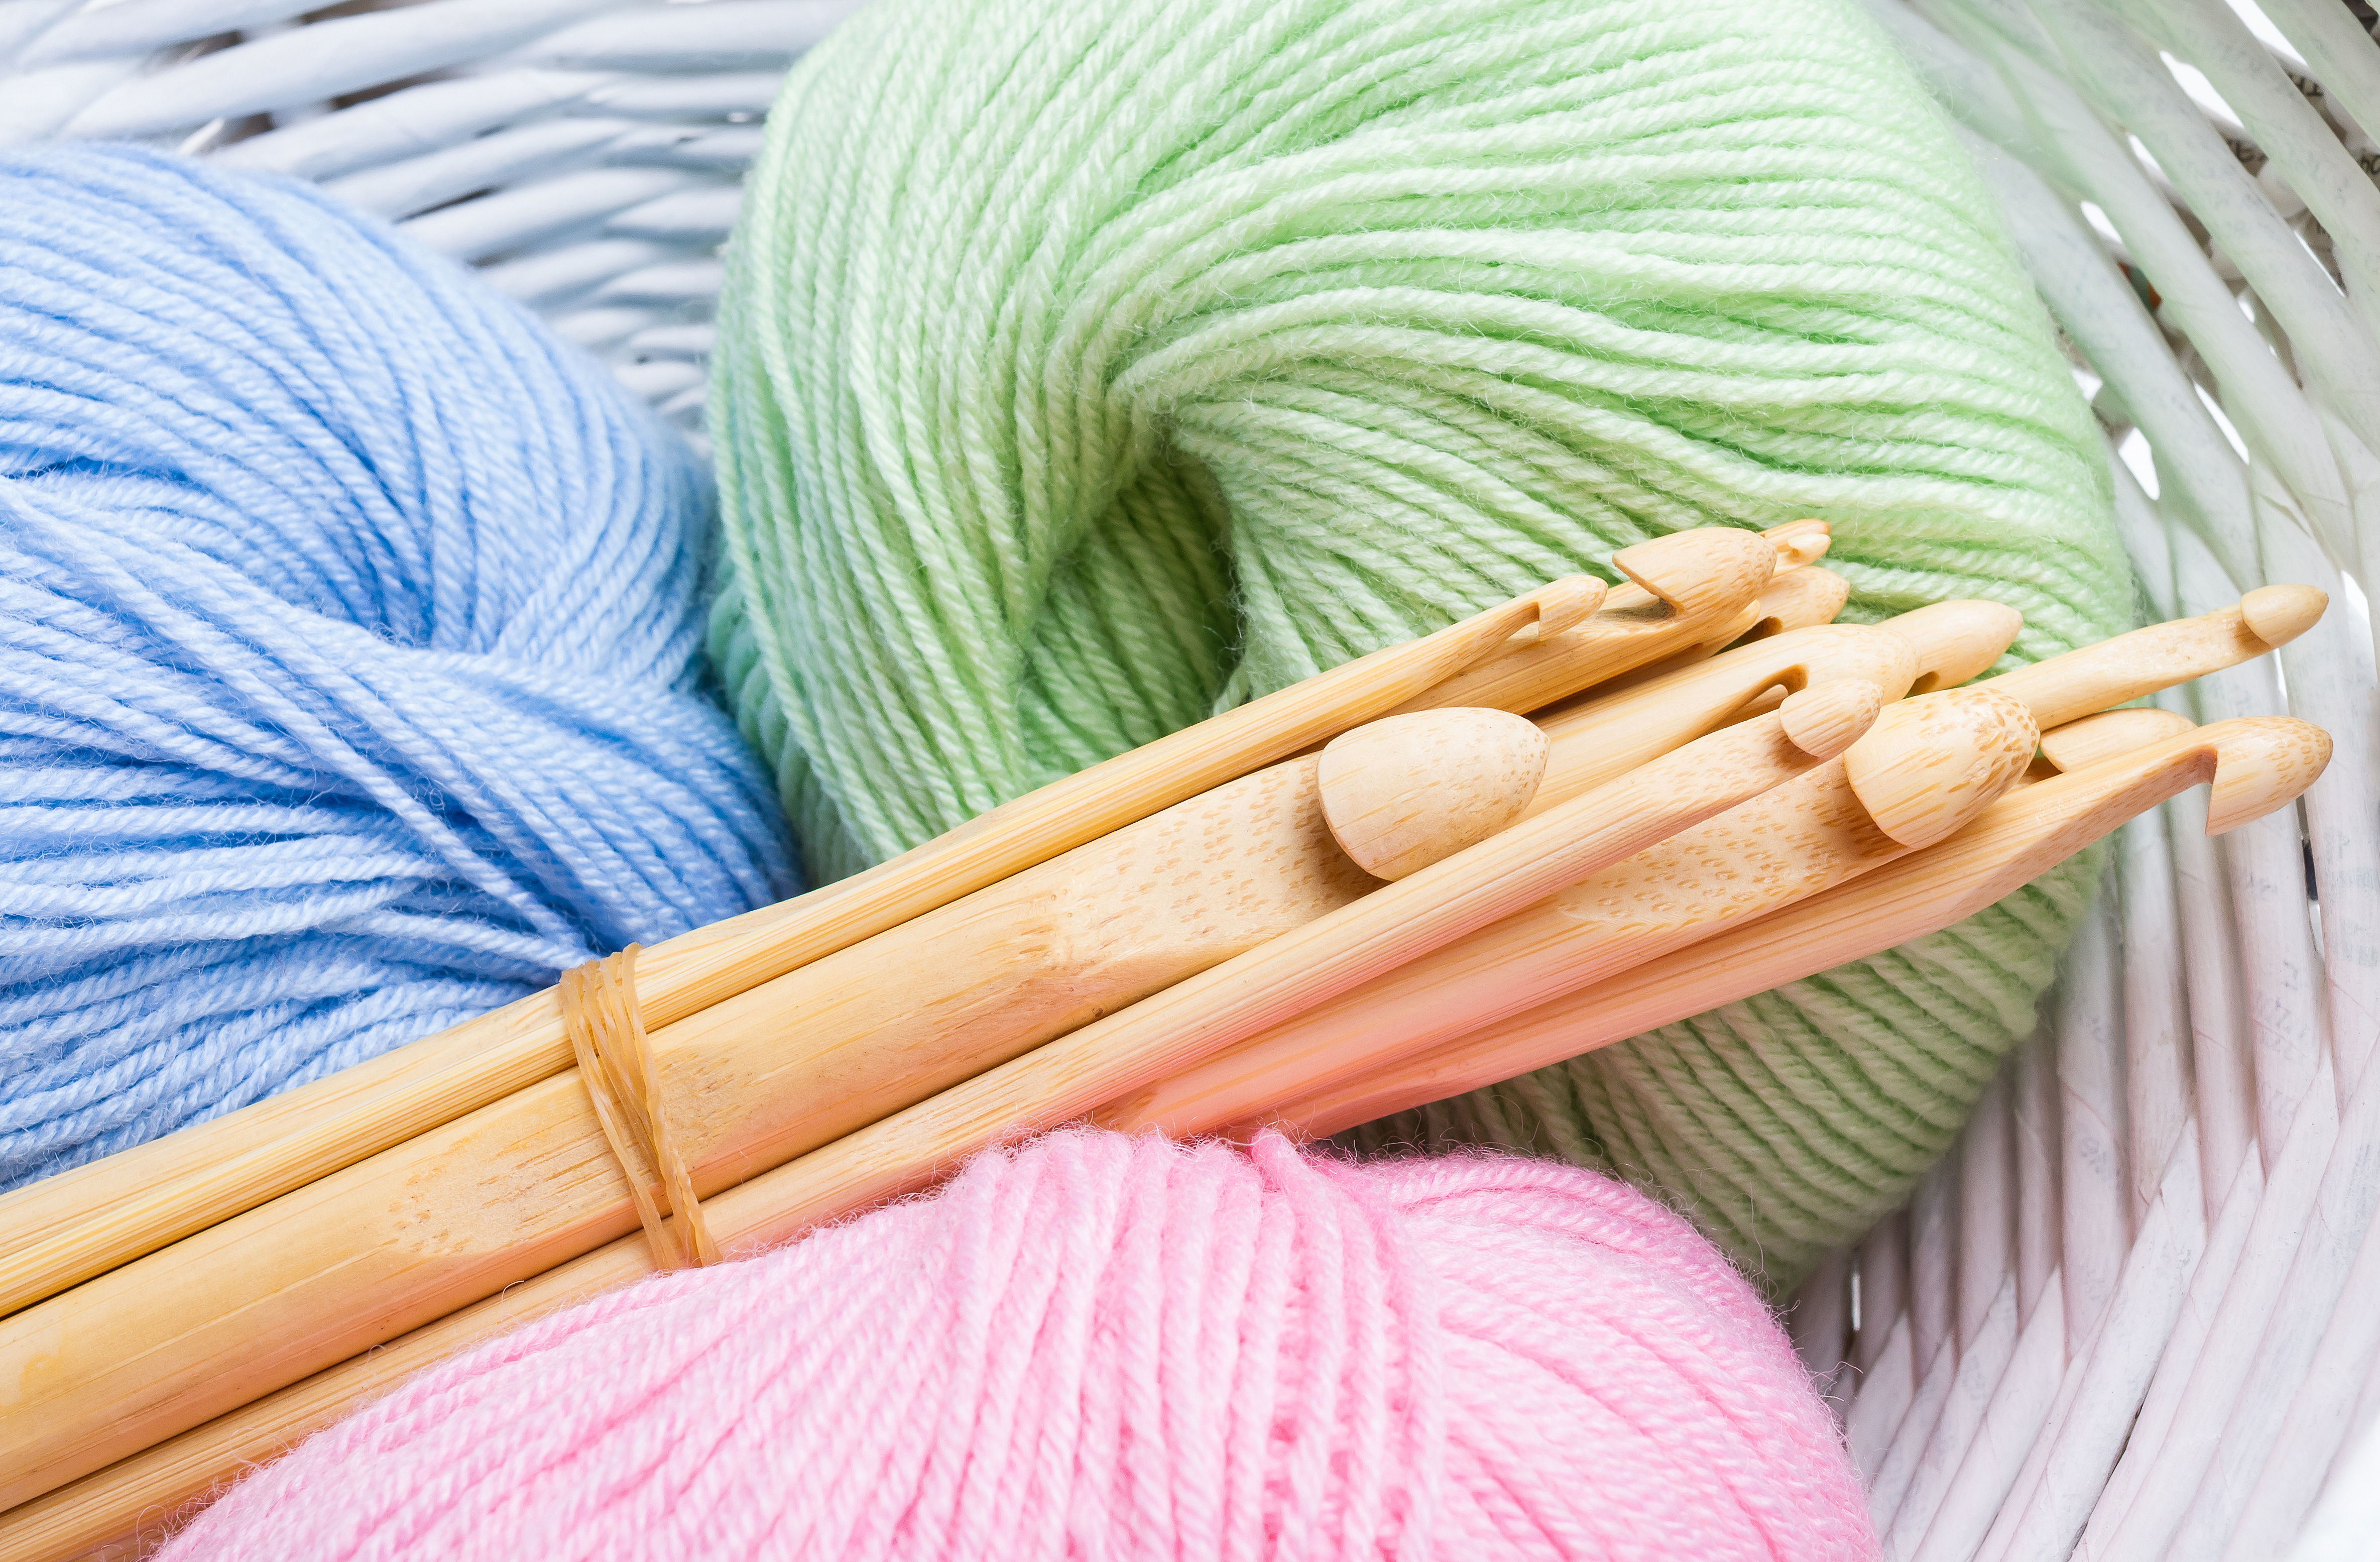 Pastel colored yarn in white basket and wooden crochet hooks of different sizes.